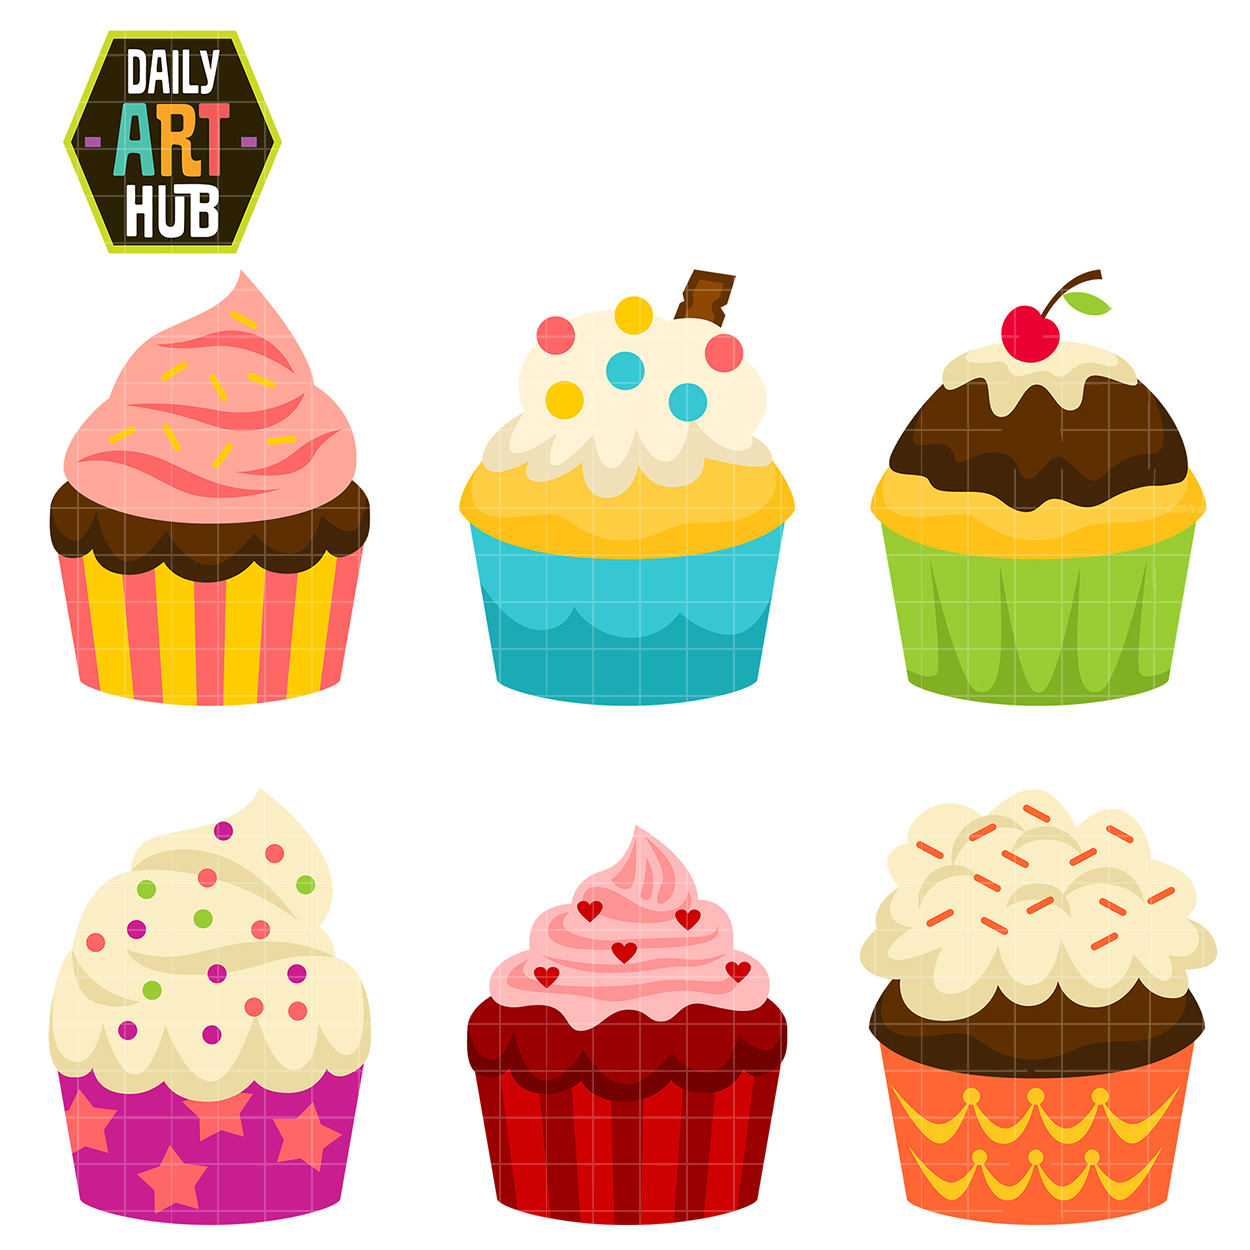 clipart clip cakes cup party cupcakes cupcake cute class cliparts food comic cake pastries objects christmas items making